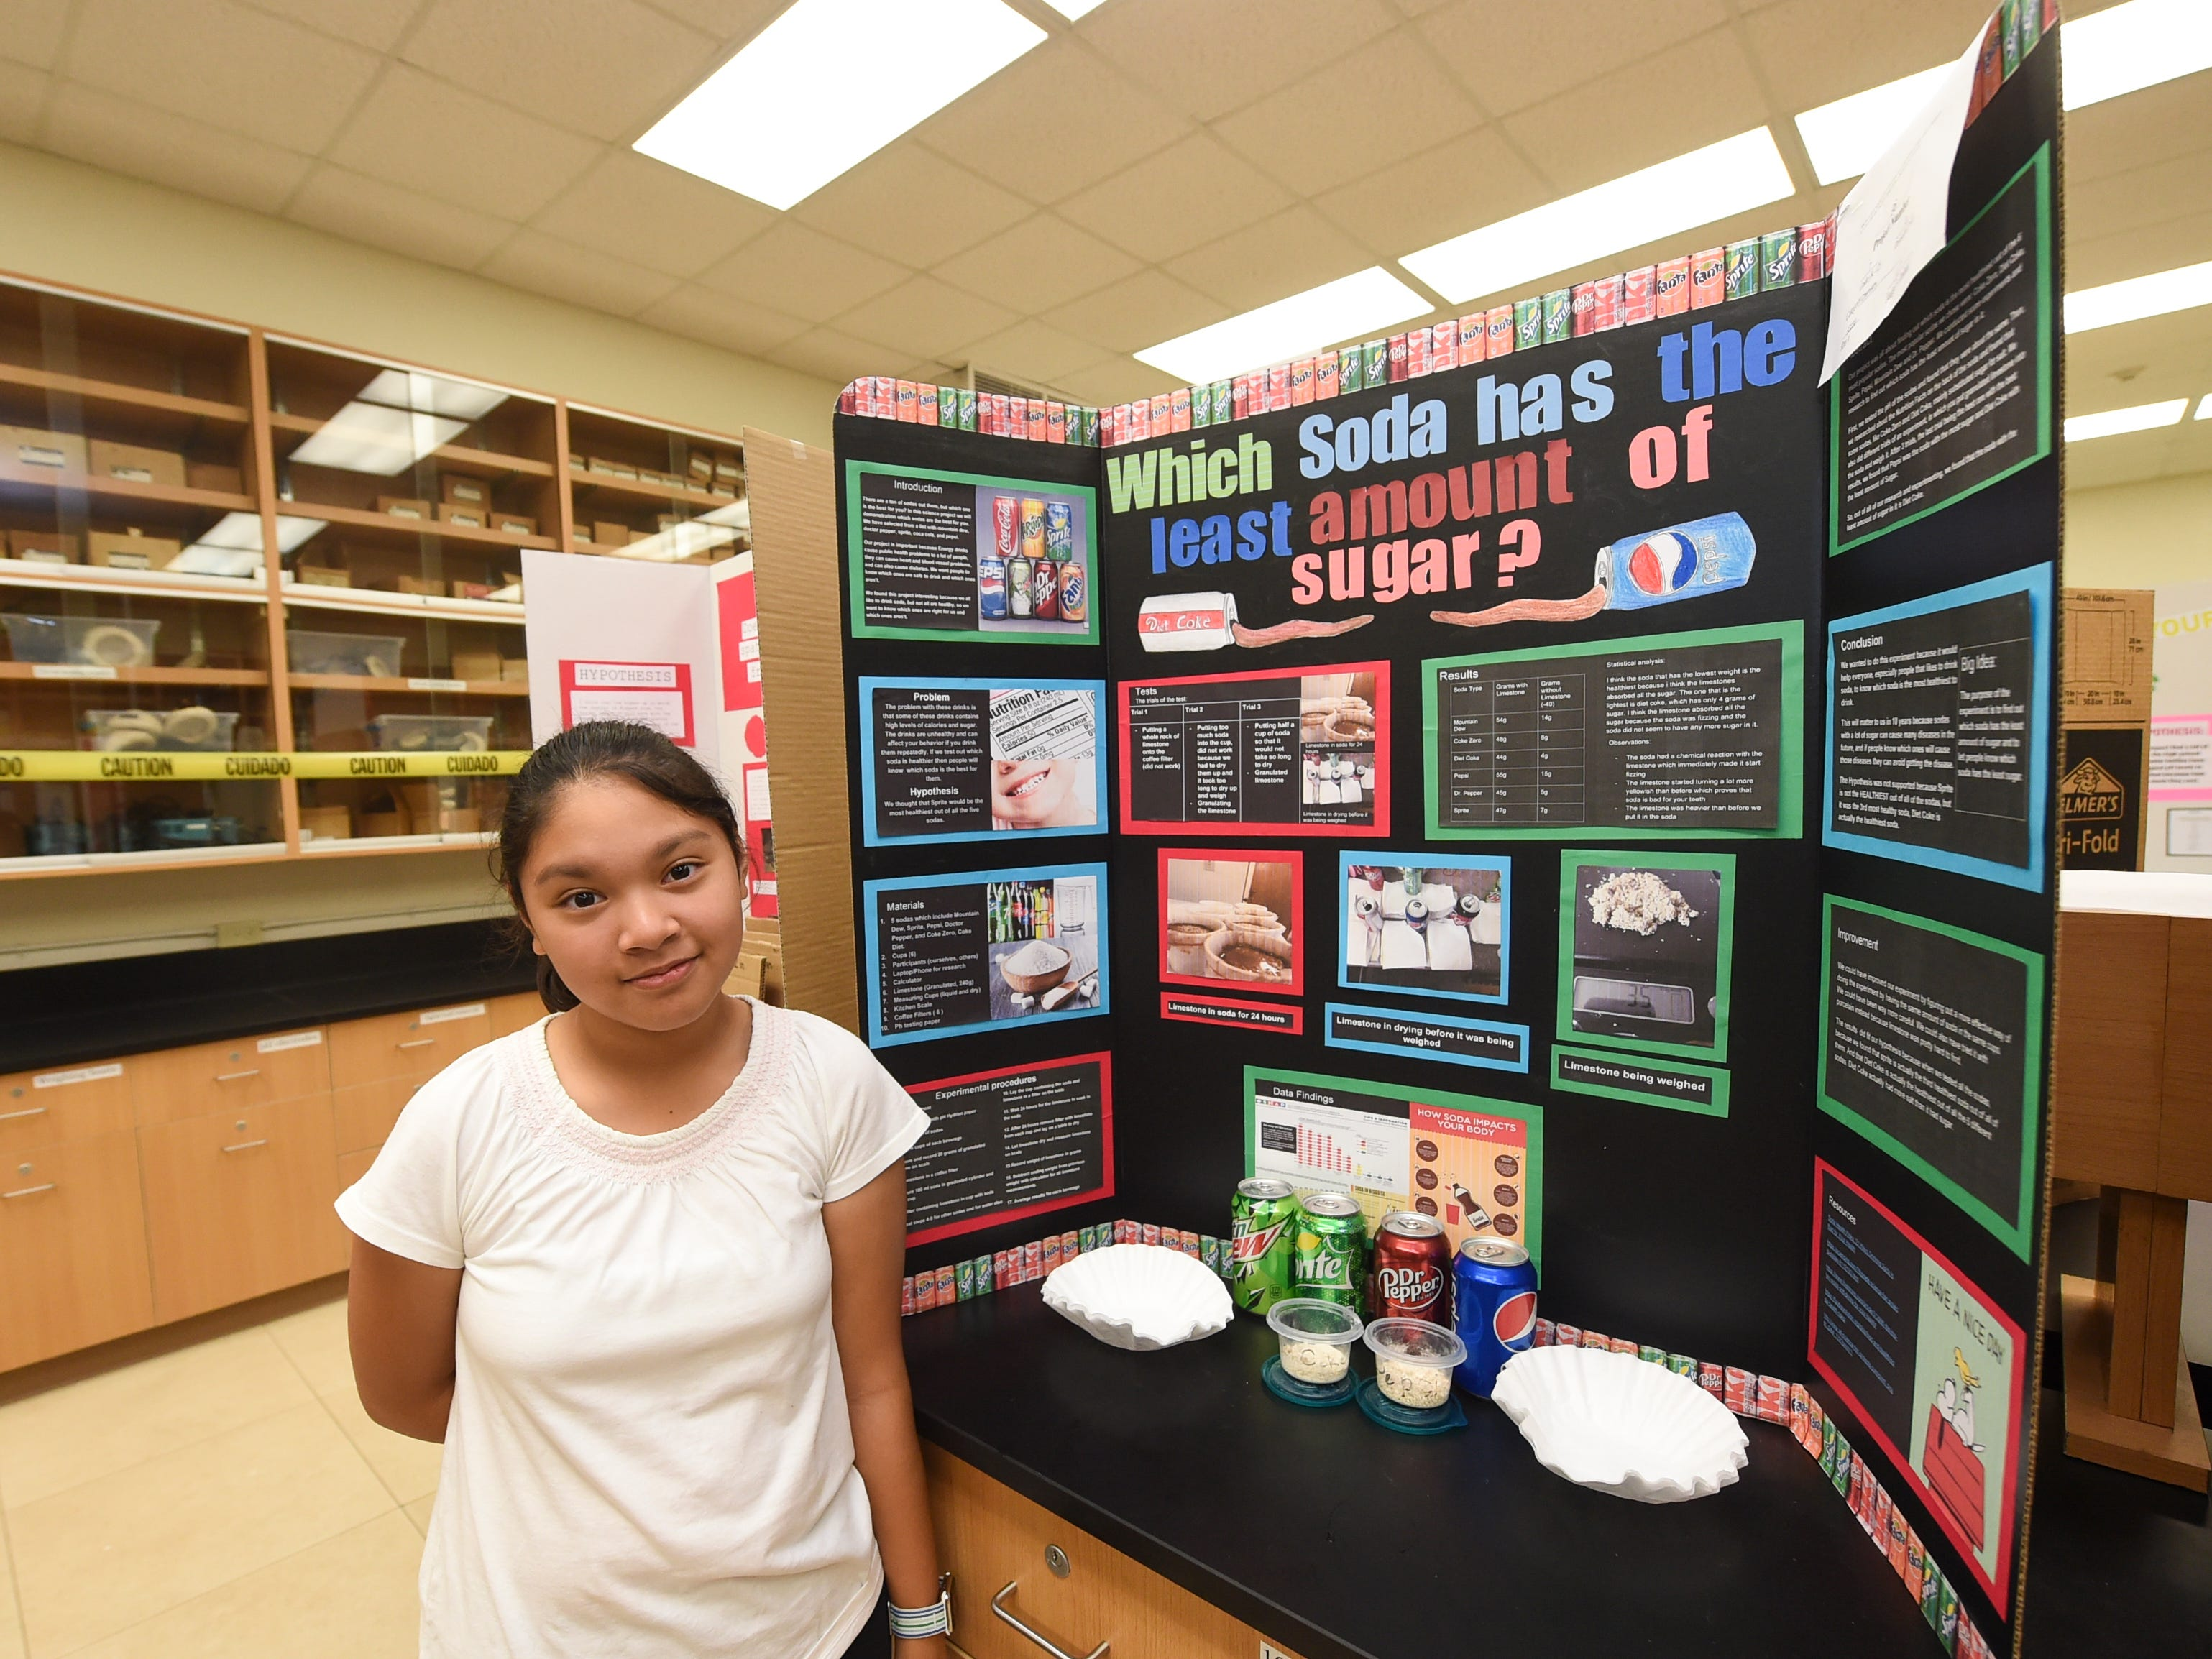 Sophia Garcia, 12, with her science project during the 41st Annual Islandwide Science Fair at the University of Guam in Mangilao, May 11, 2019.